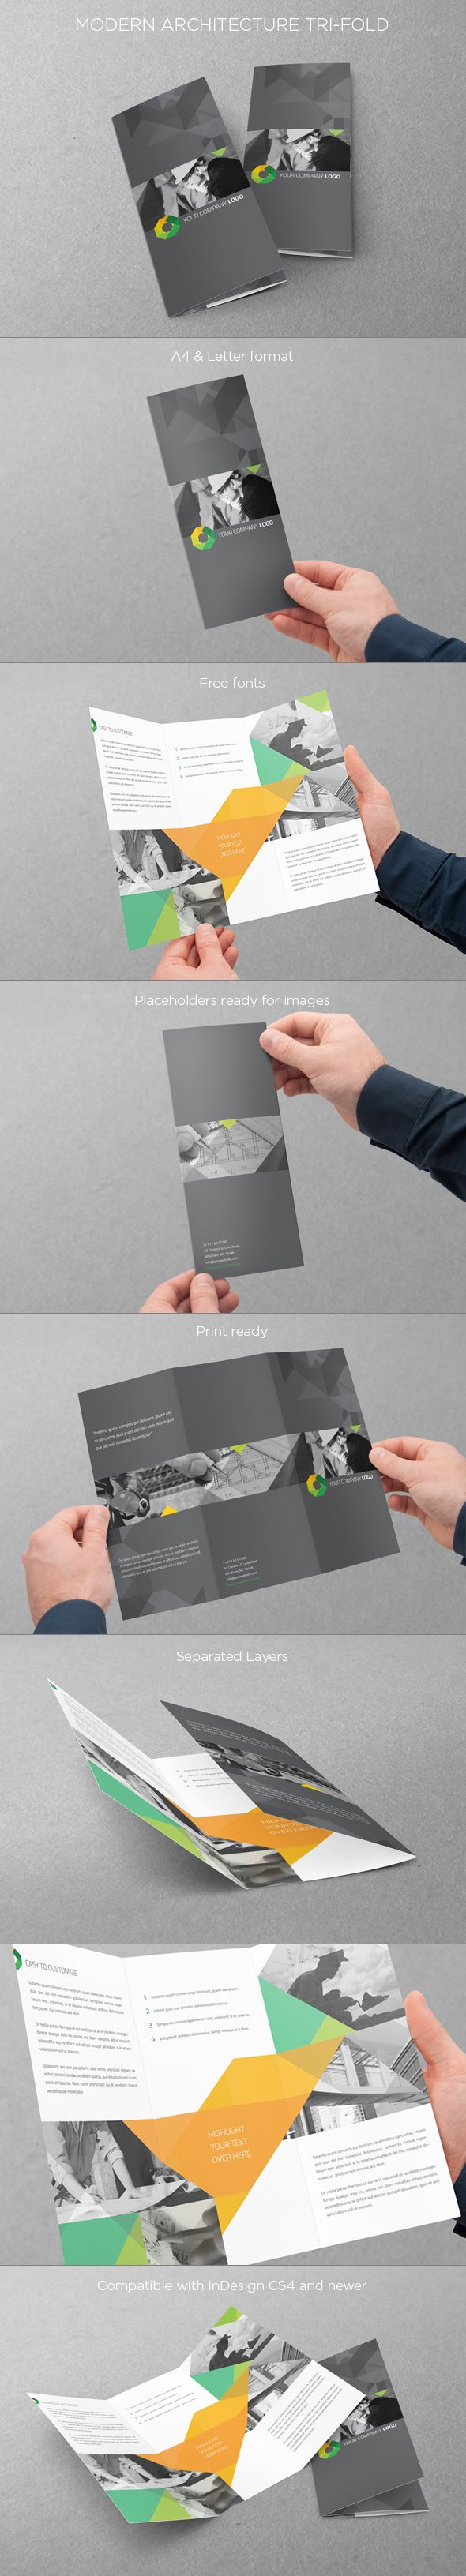 Modern Architecture Trifold. Download here: http://graphicriver.net/item/modern-architecture-trifold/5505273 #design #trifold #brochure